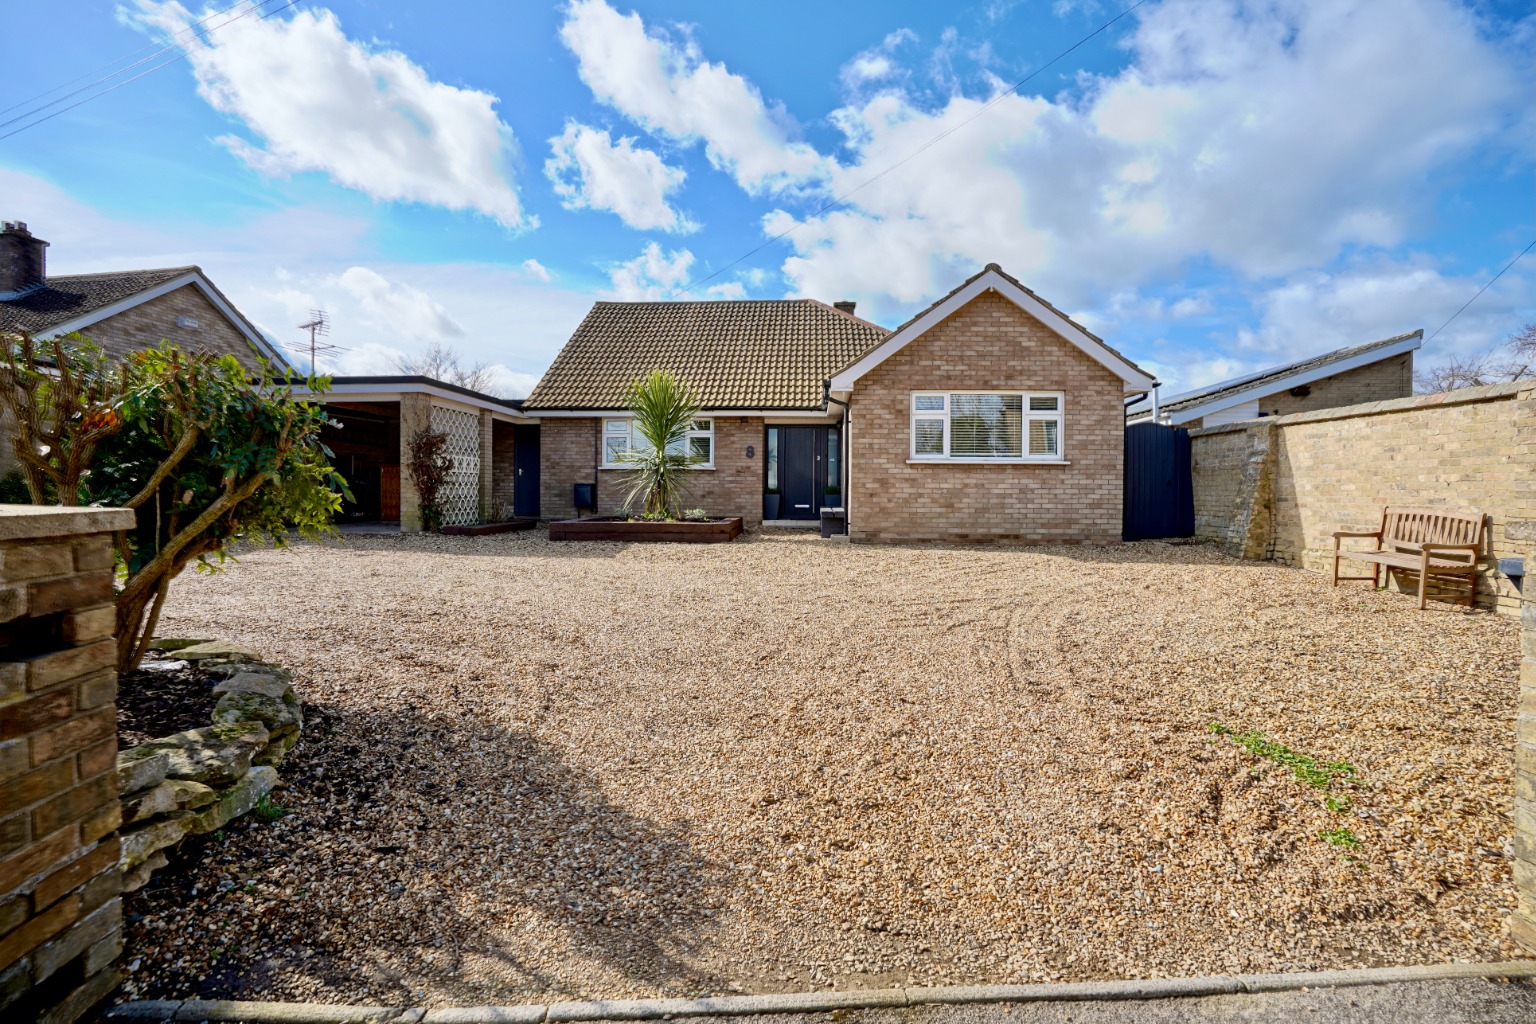 3 bed detached bungalow for sale in Howitts Lane, St. Neots - Property Image 1